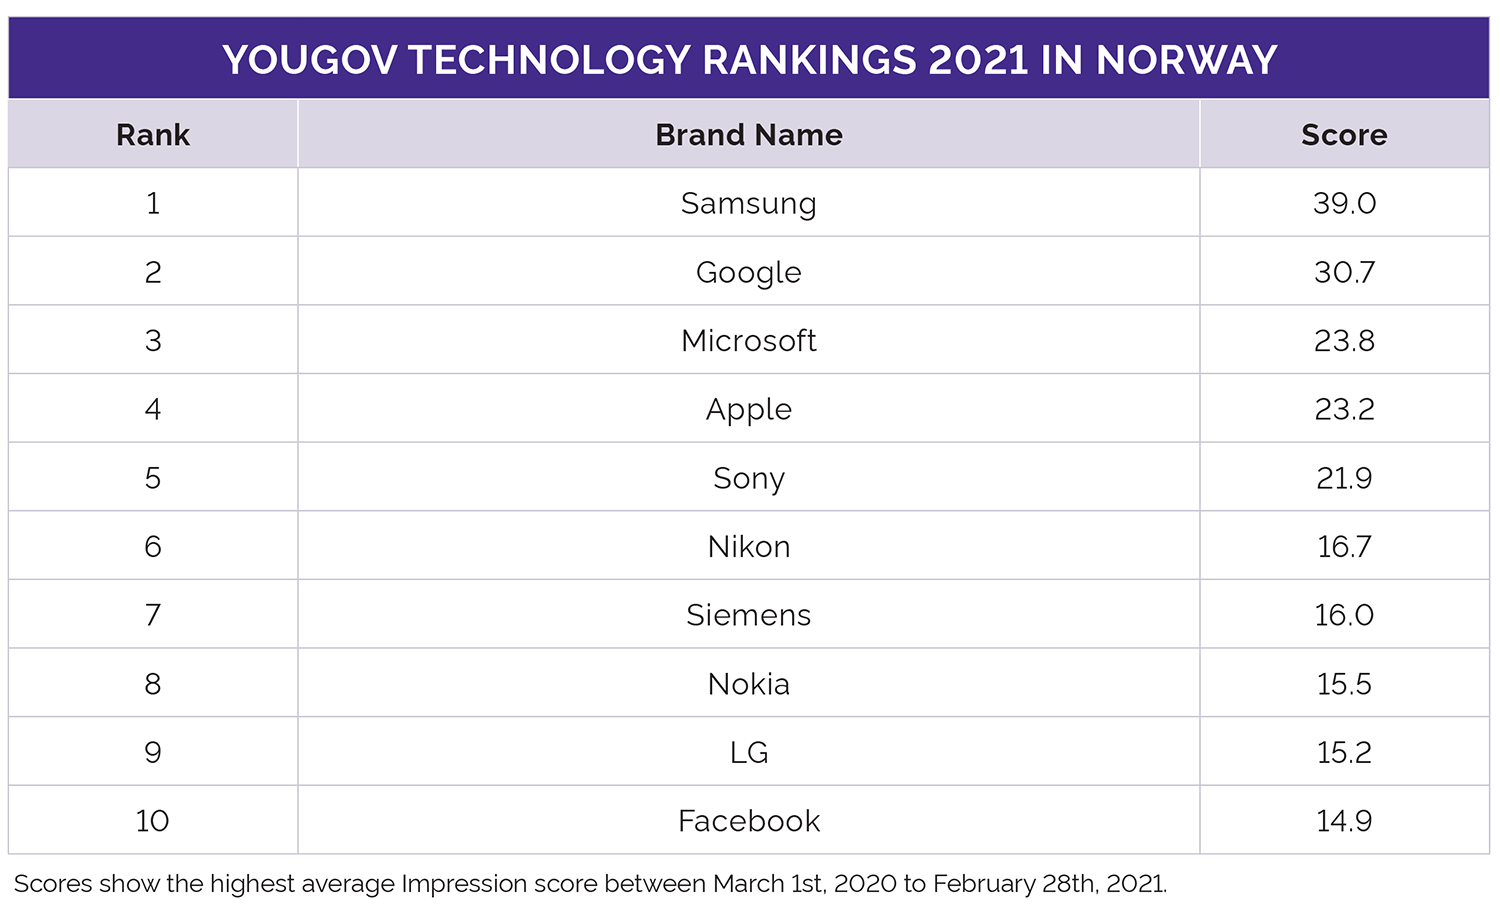 YouGov Global Technology Rankings 2021 Norway